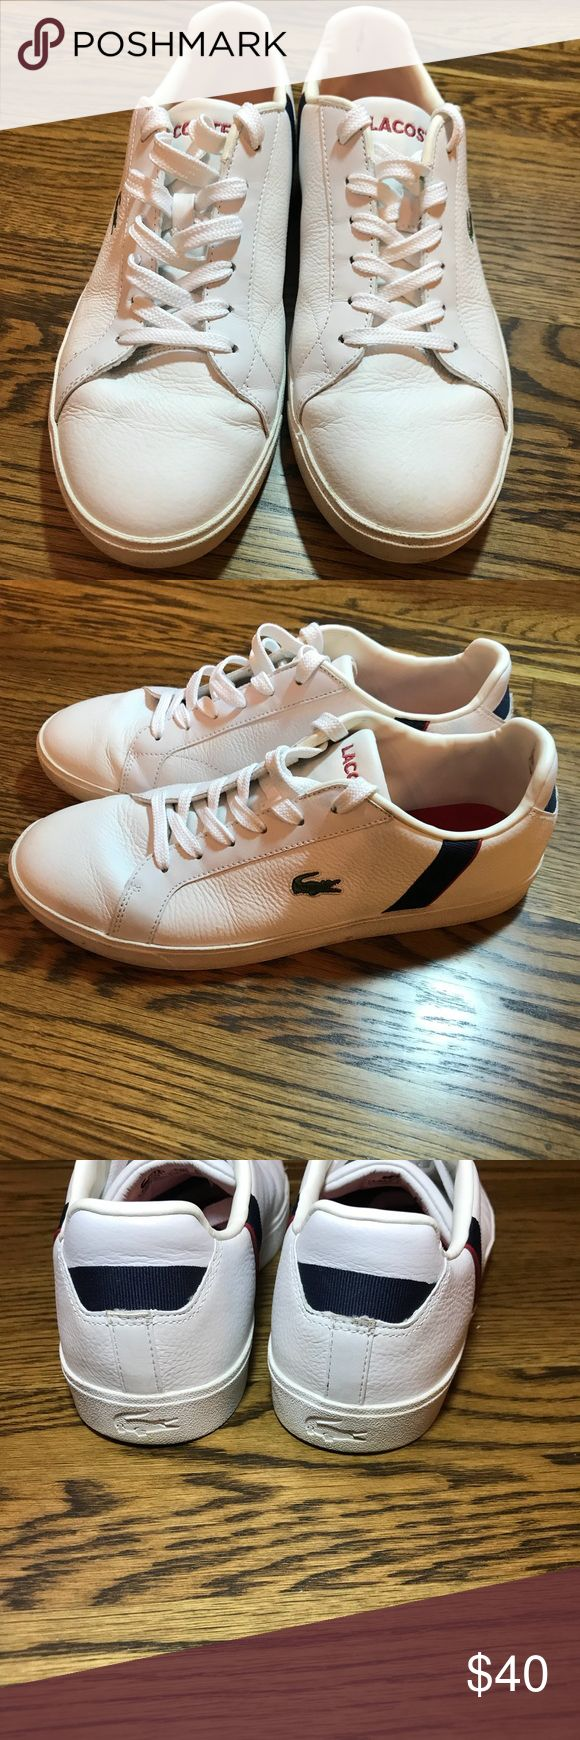 Lacoste sneakers leather great condition Lacoste sneakers leather great condition Lacoste Shoes Sneakers